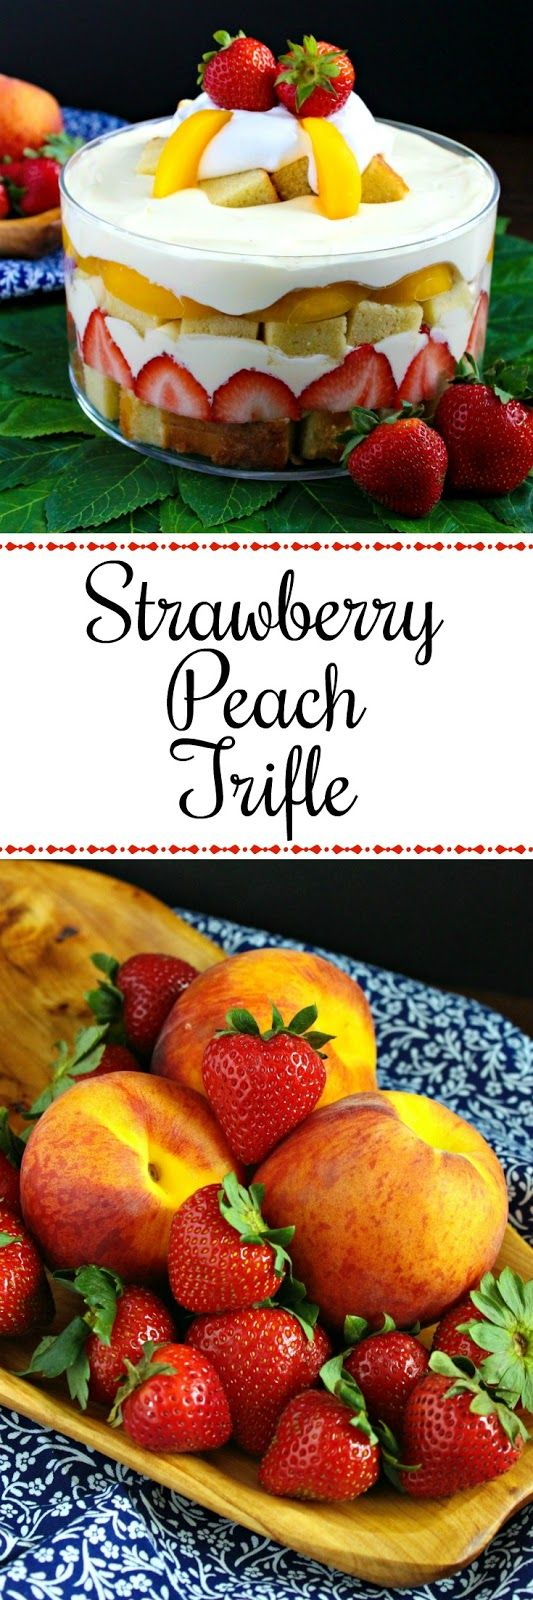 Strawberry Peach Pound Cake Trifle from LoveandConfections.com with @dixiecrystals #sponsored